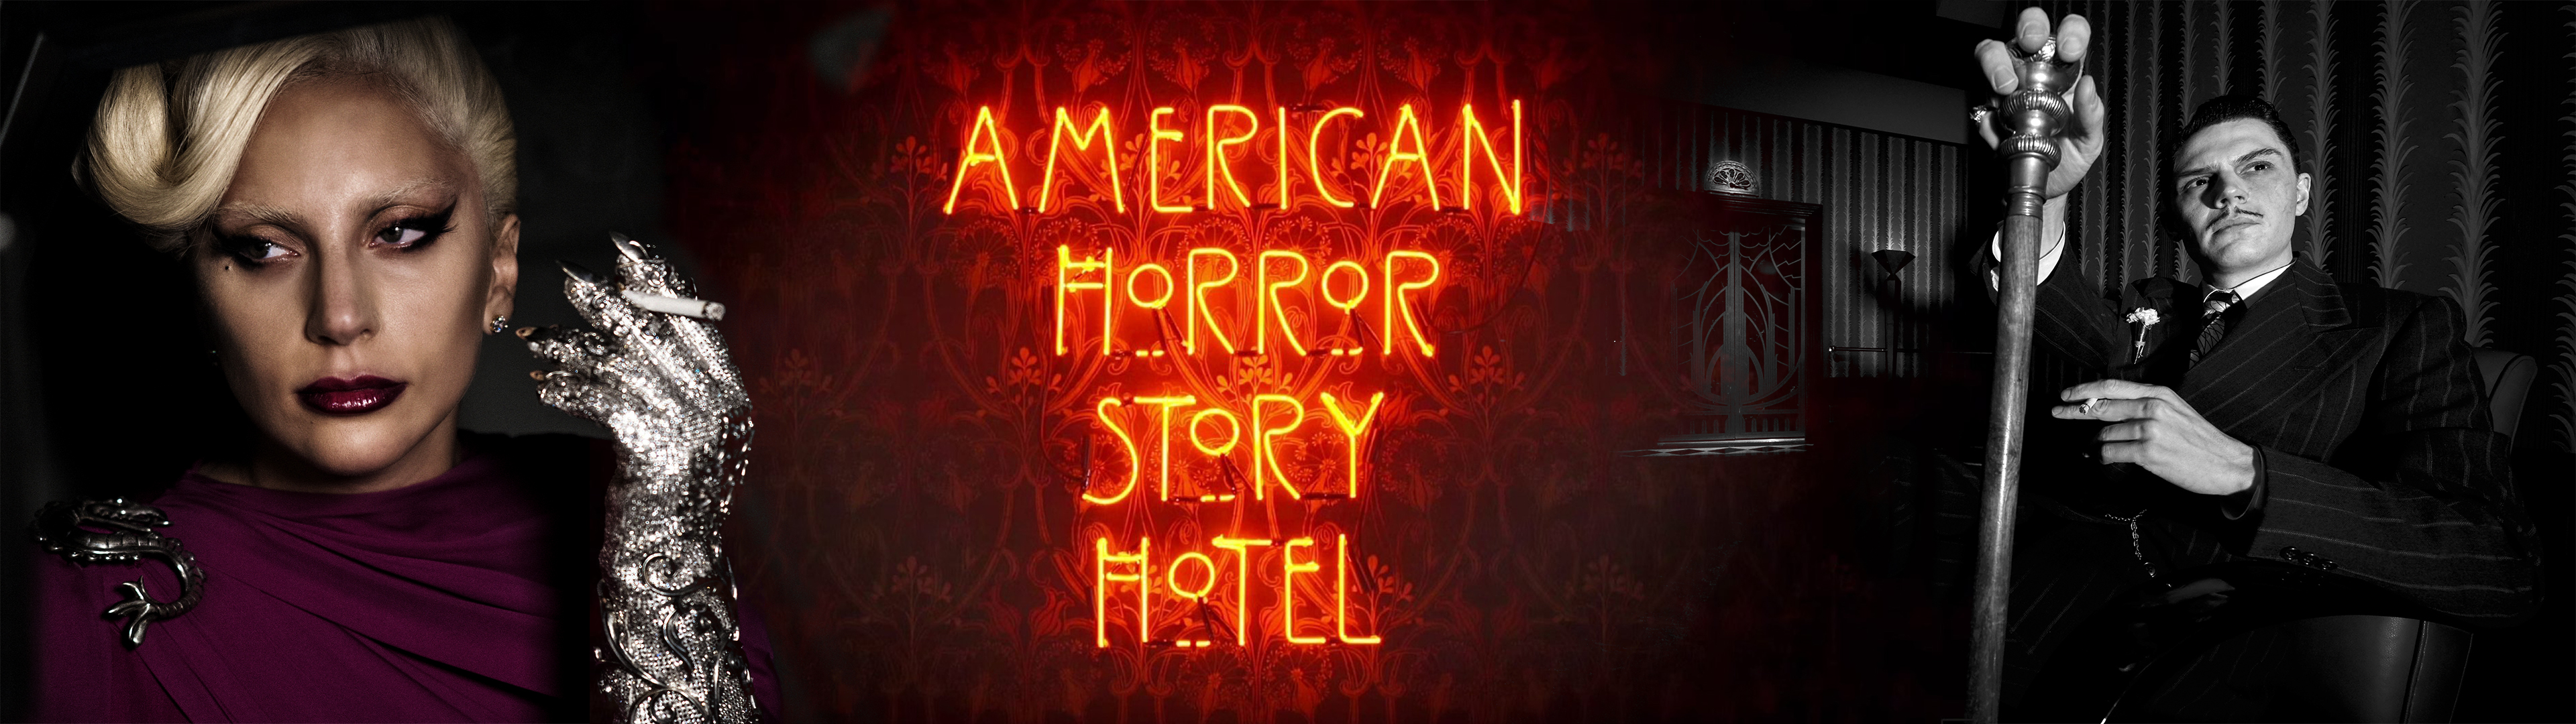 American Horror Story Hotel Dual Screen Wallpaper By Lariatura On